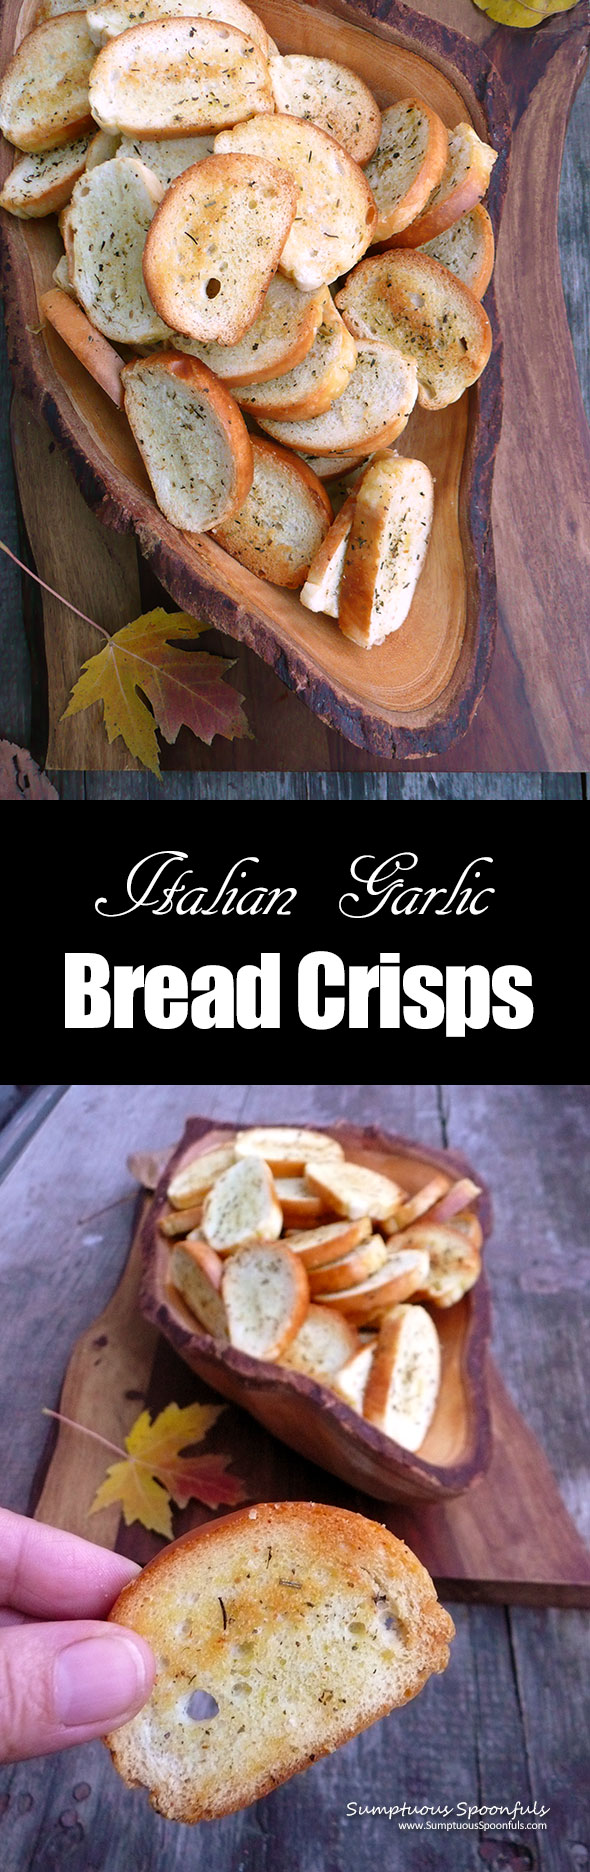 Italian Garlic Bread Crisps ~ Sumptuous Spoonfuls #easy #crunchy #snack #recipe